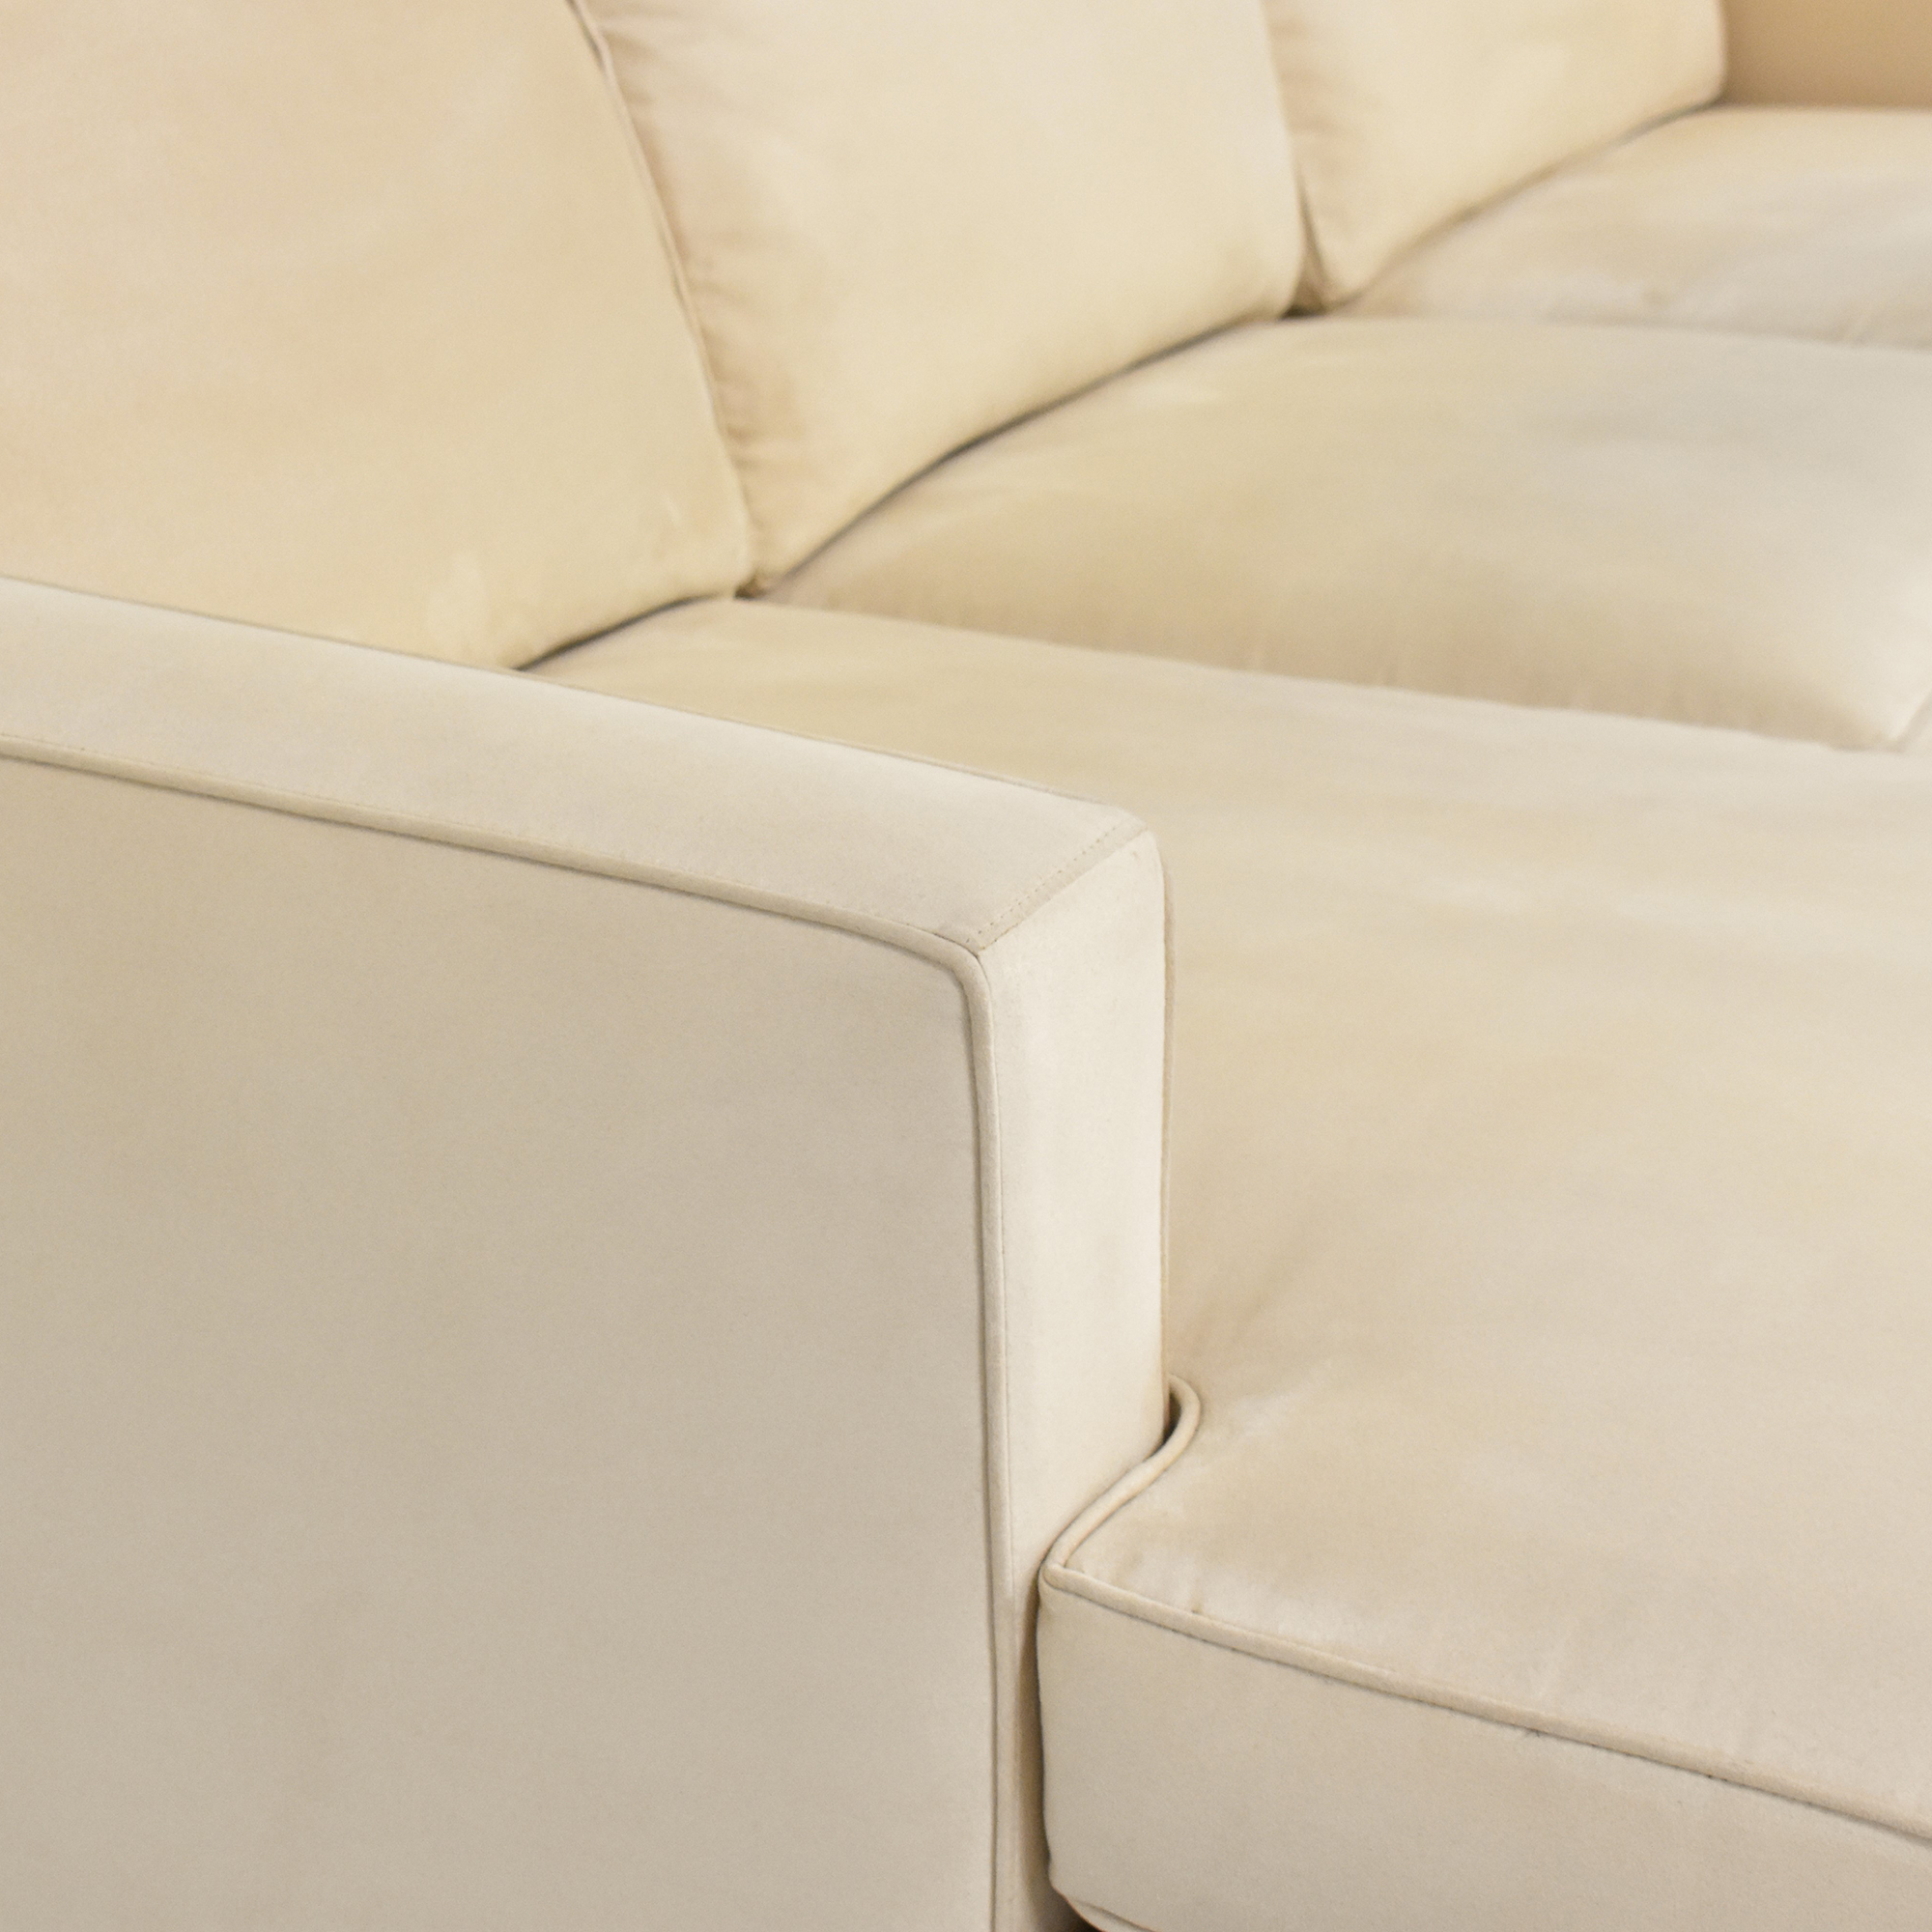 Crate & Barrel Crate and Barrel Chaise Sectional Sofa price